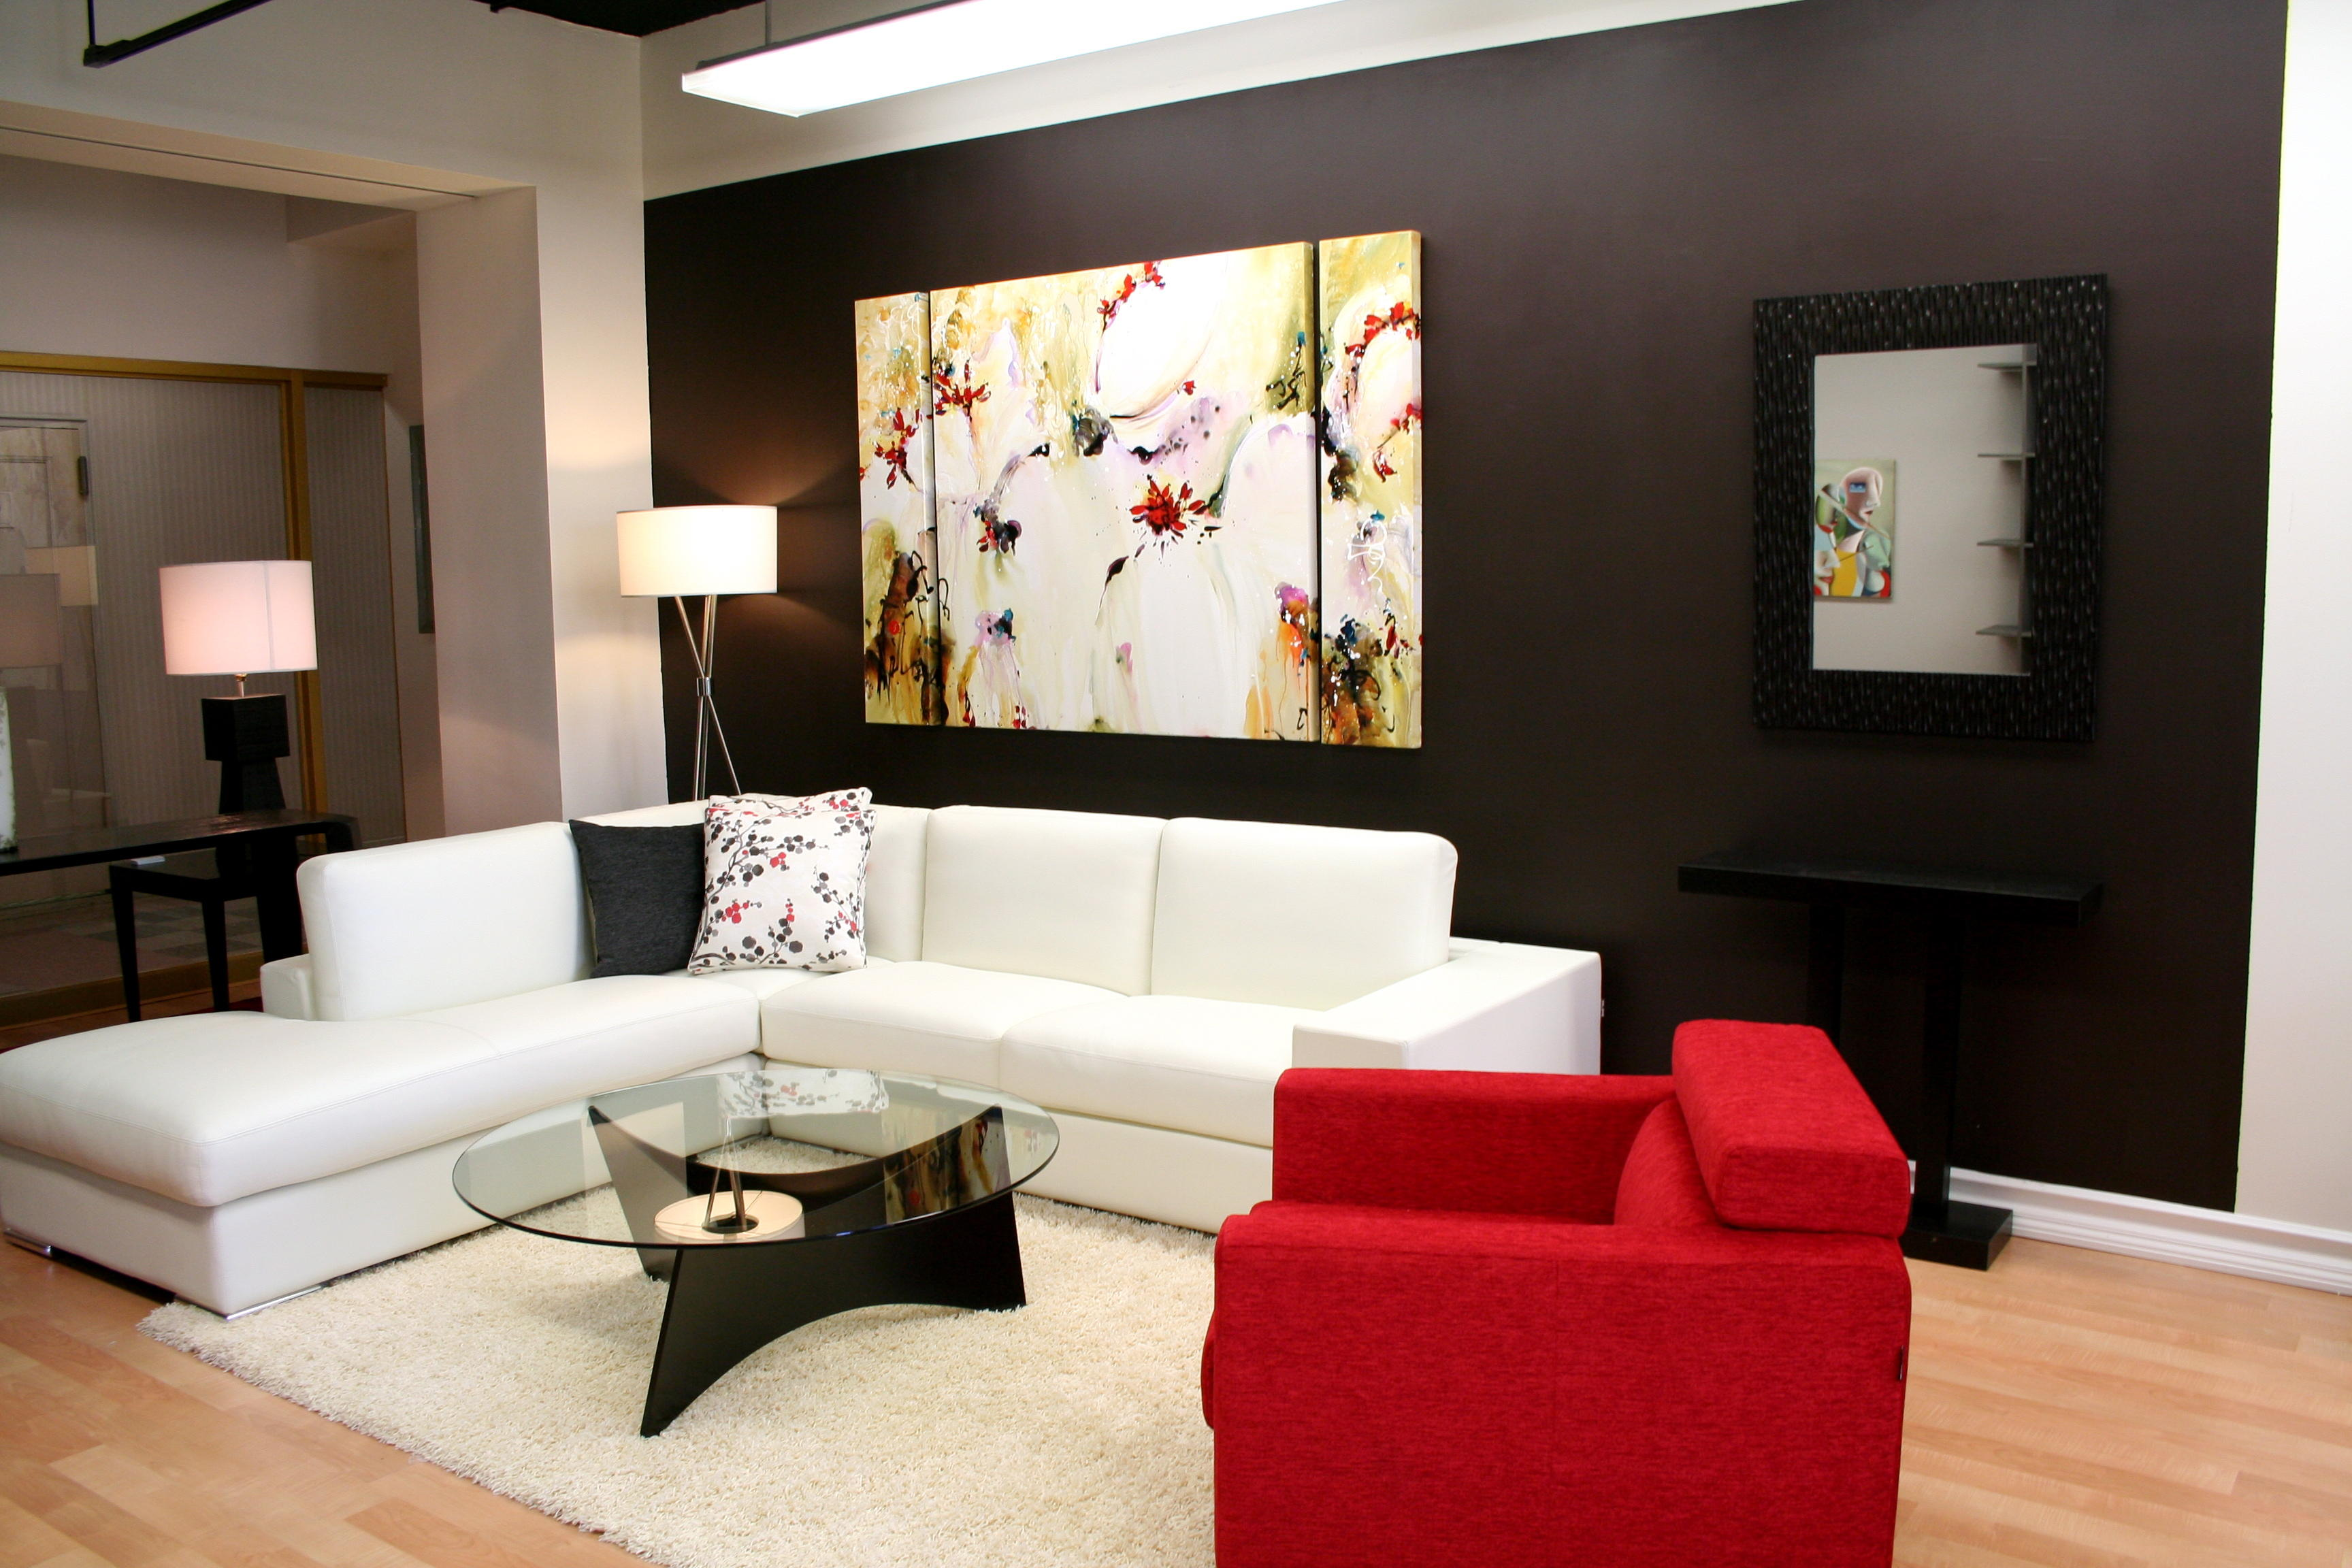 How To Dress Up Your Living Room On A Budget